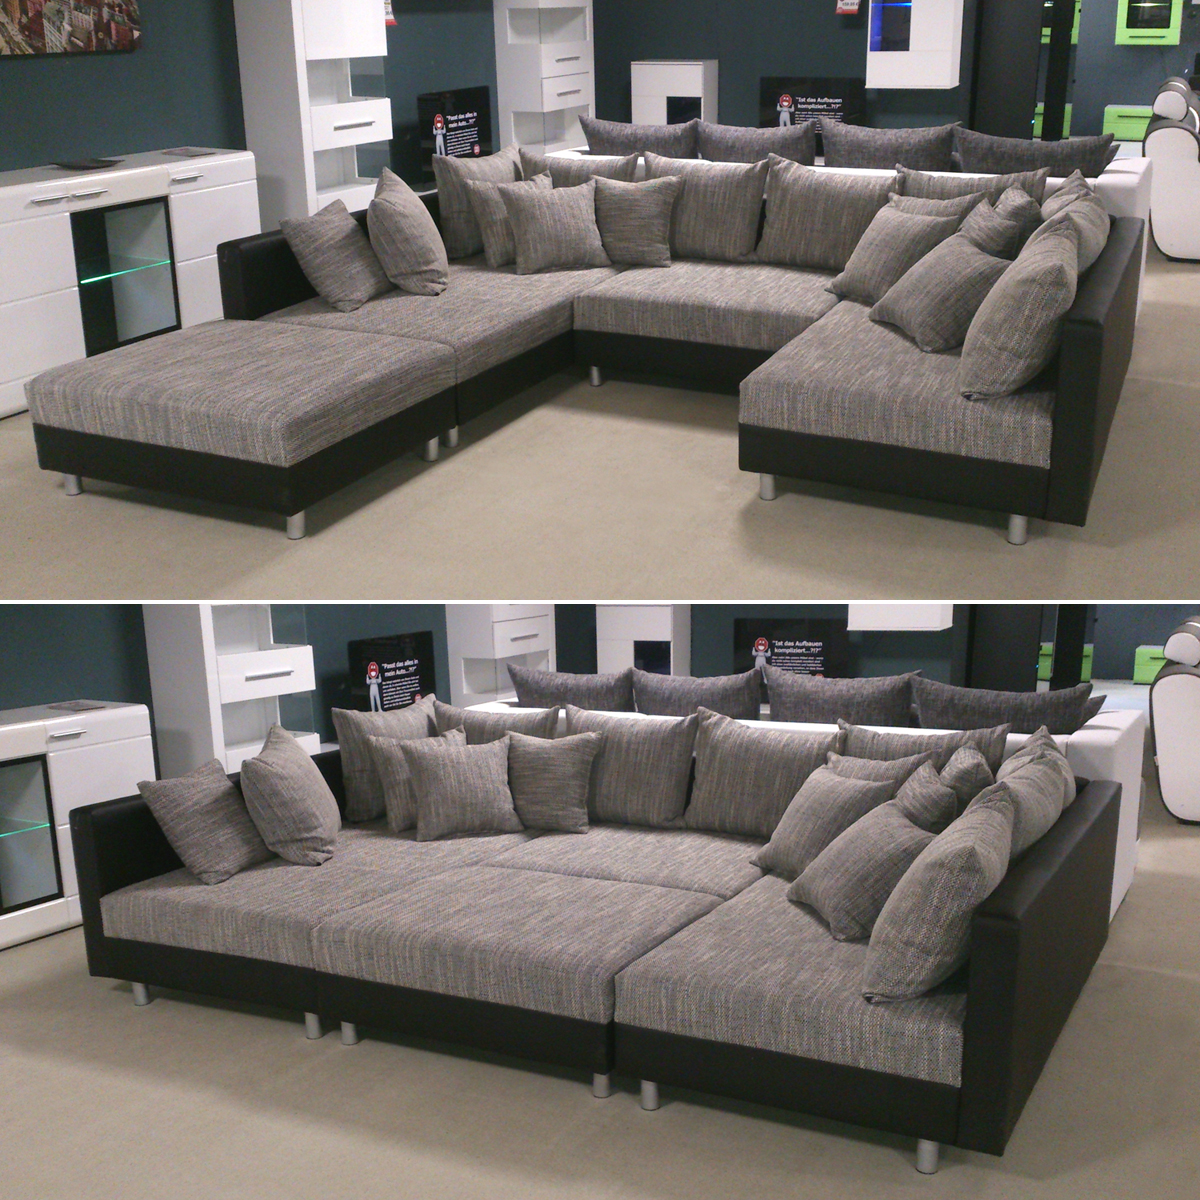 Xxl sofa u form design sectional sofa matera xxl with led lights grey black ebay xxl sectional Big sofa hocker